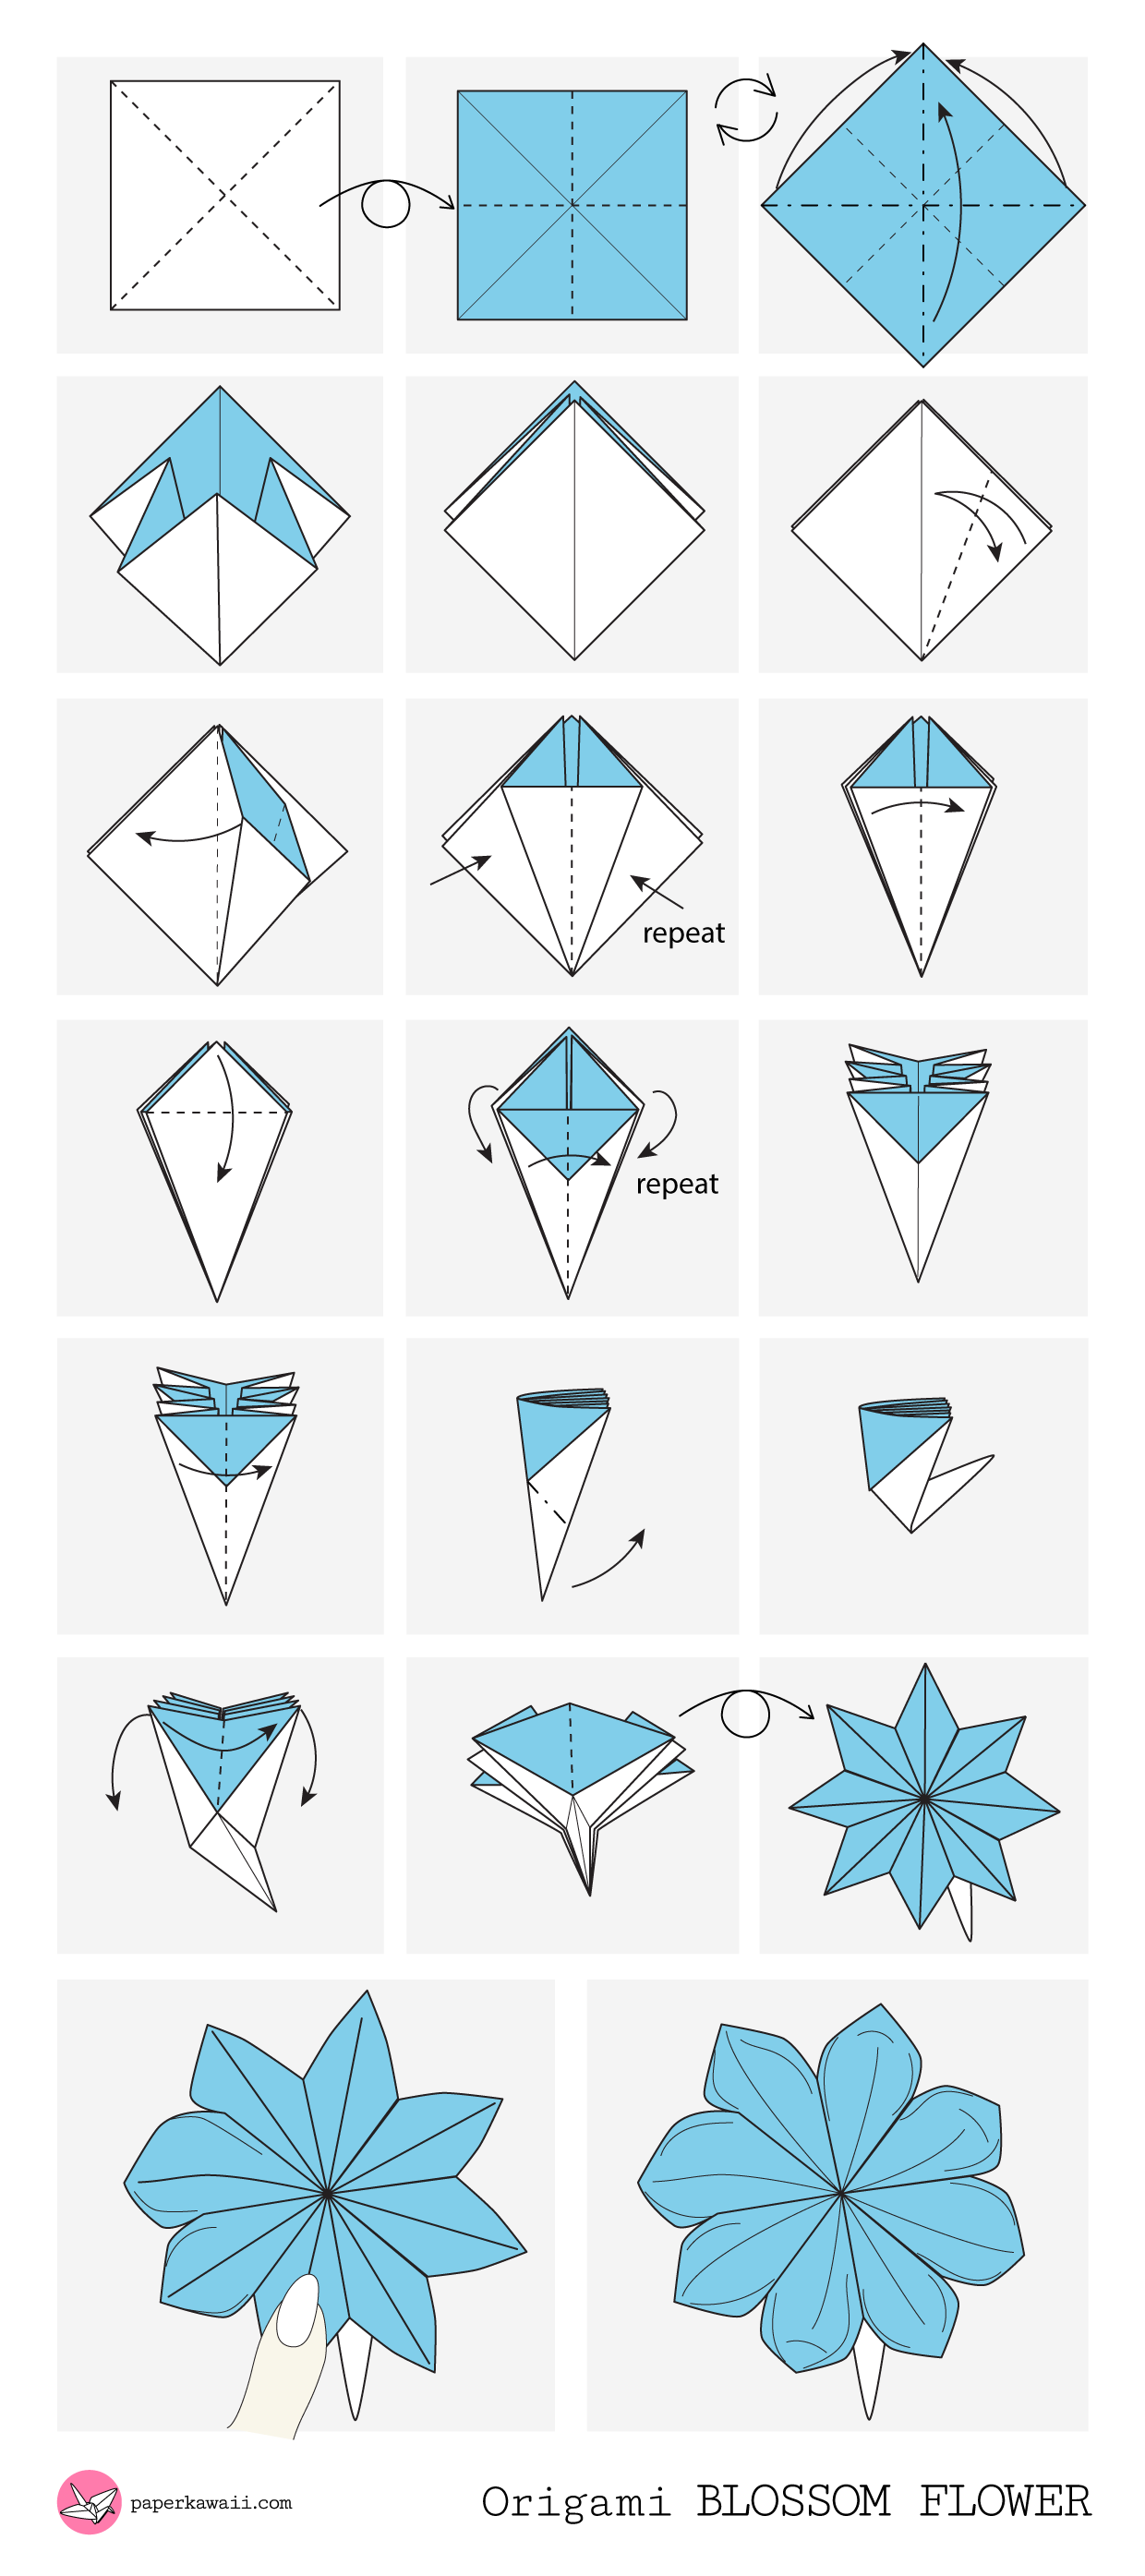 origami flower diagrams box wiring diagram origami flowers step by step origami diagrams paper kawaii 3d [ 1240 x 2790 Pixel ]